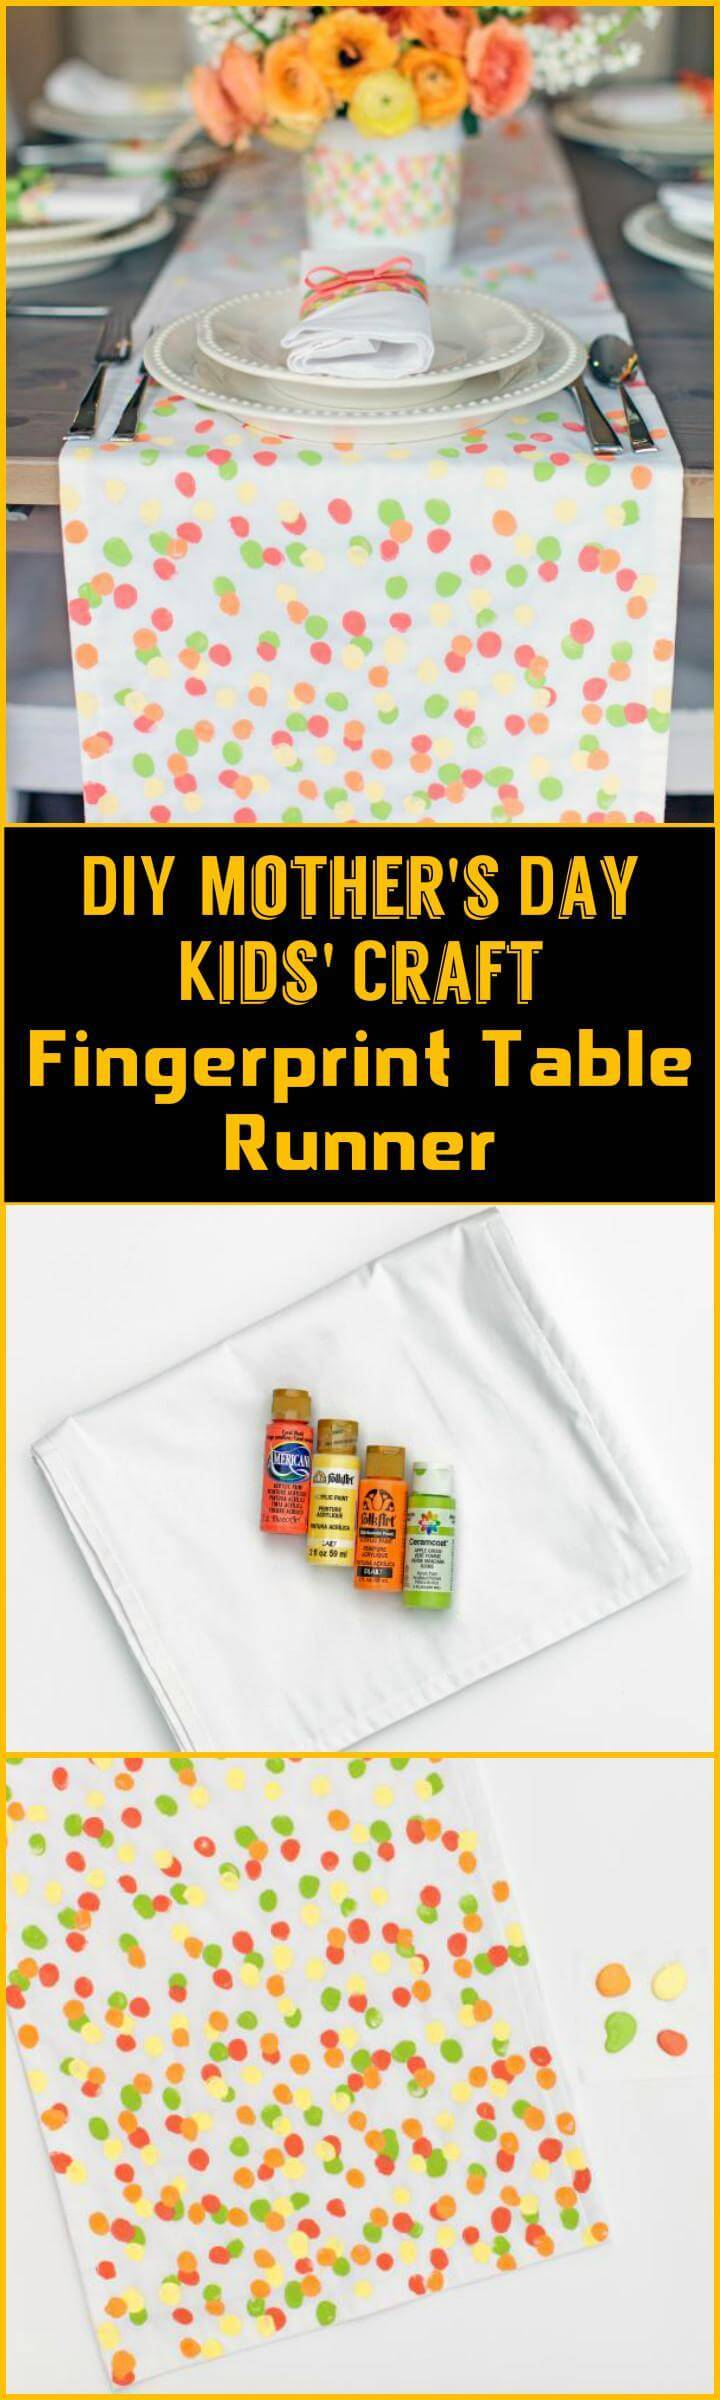 DIY Mother's Day fingerprint table runner